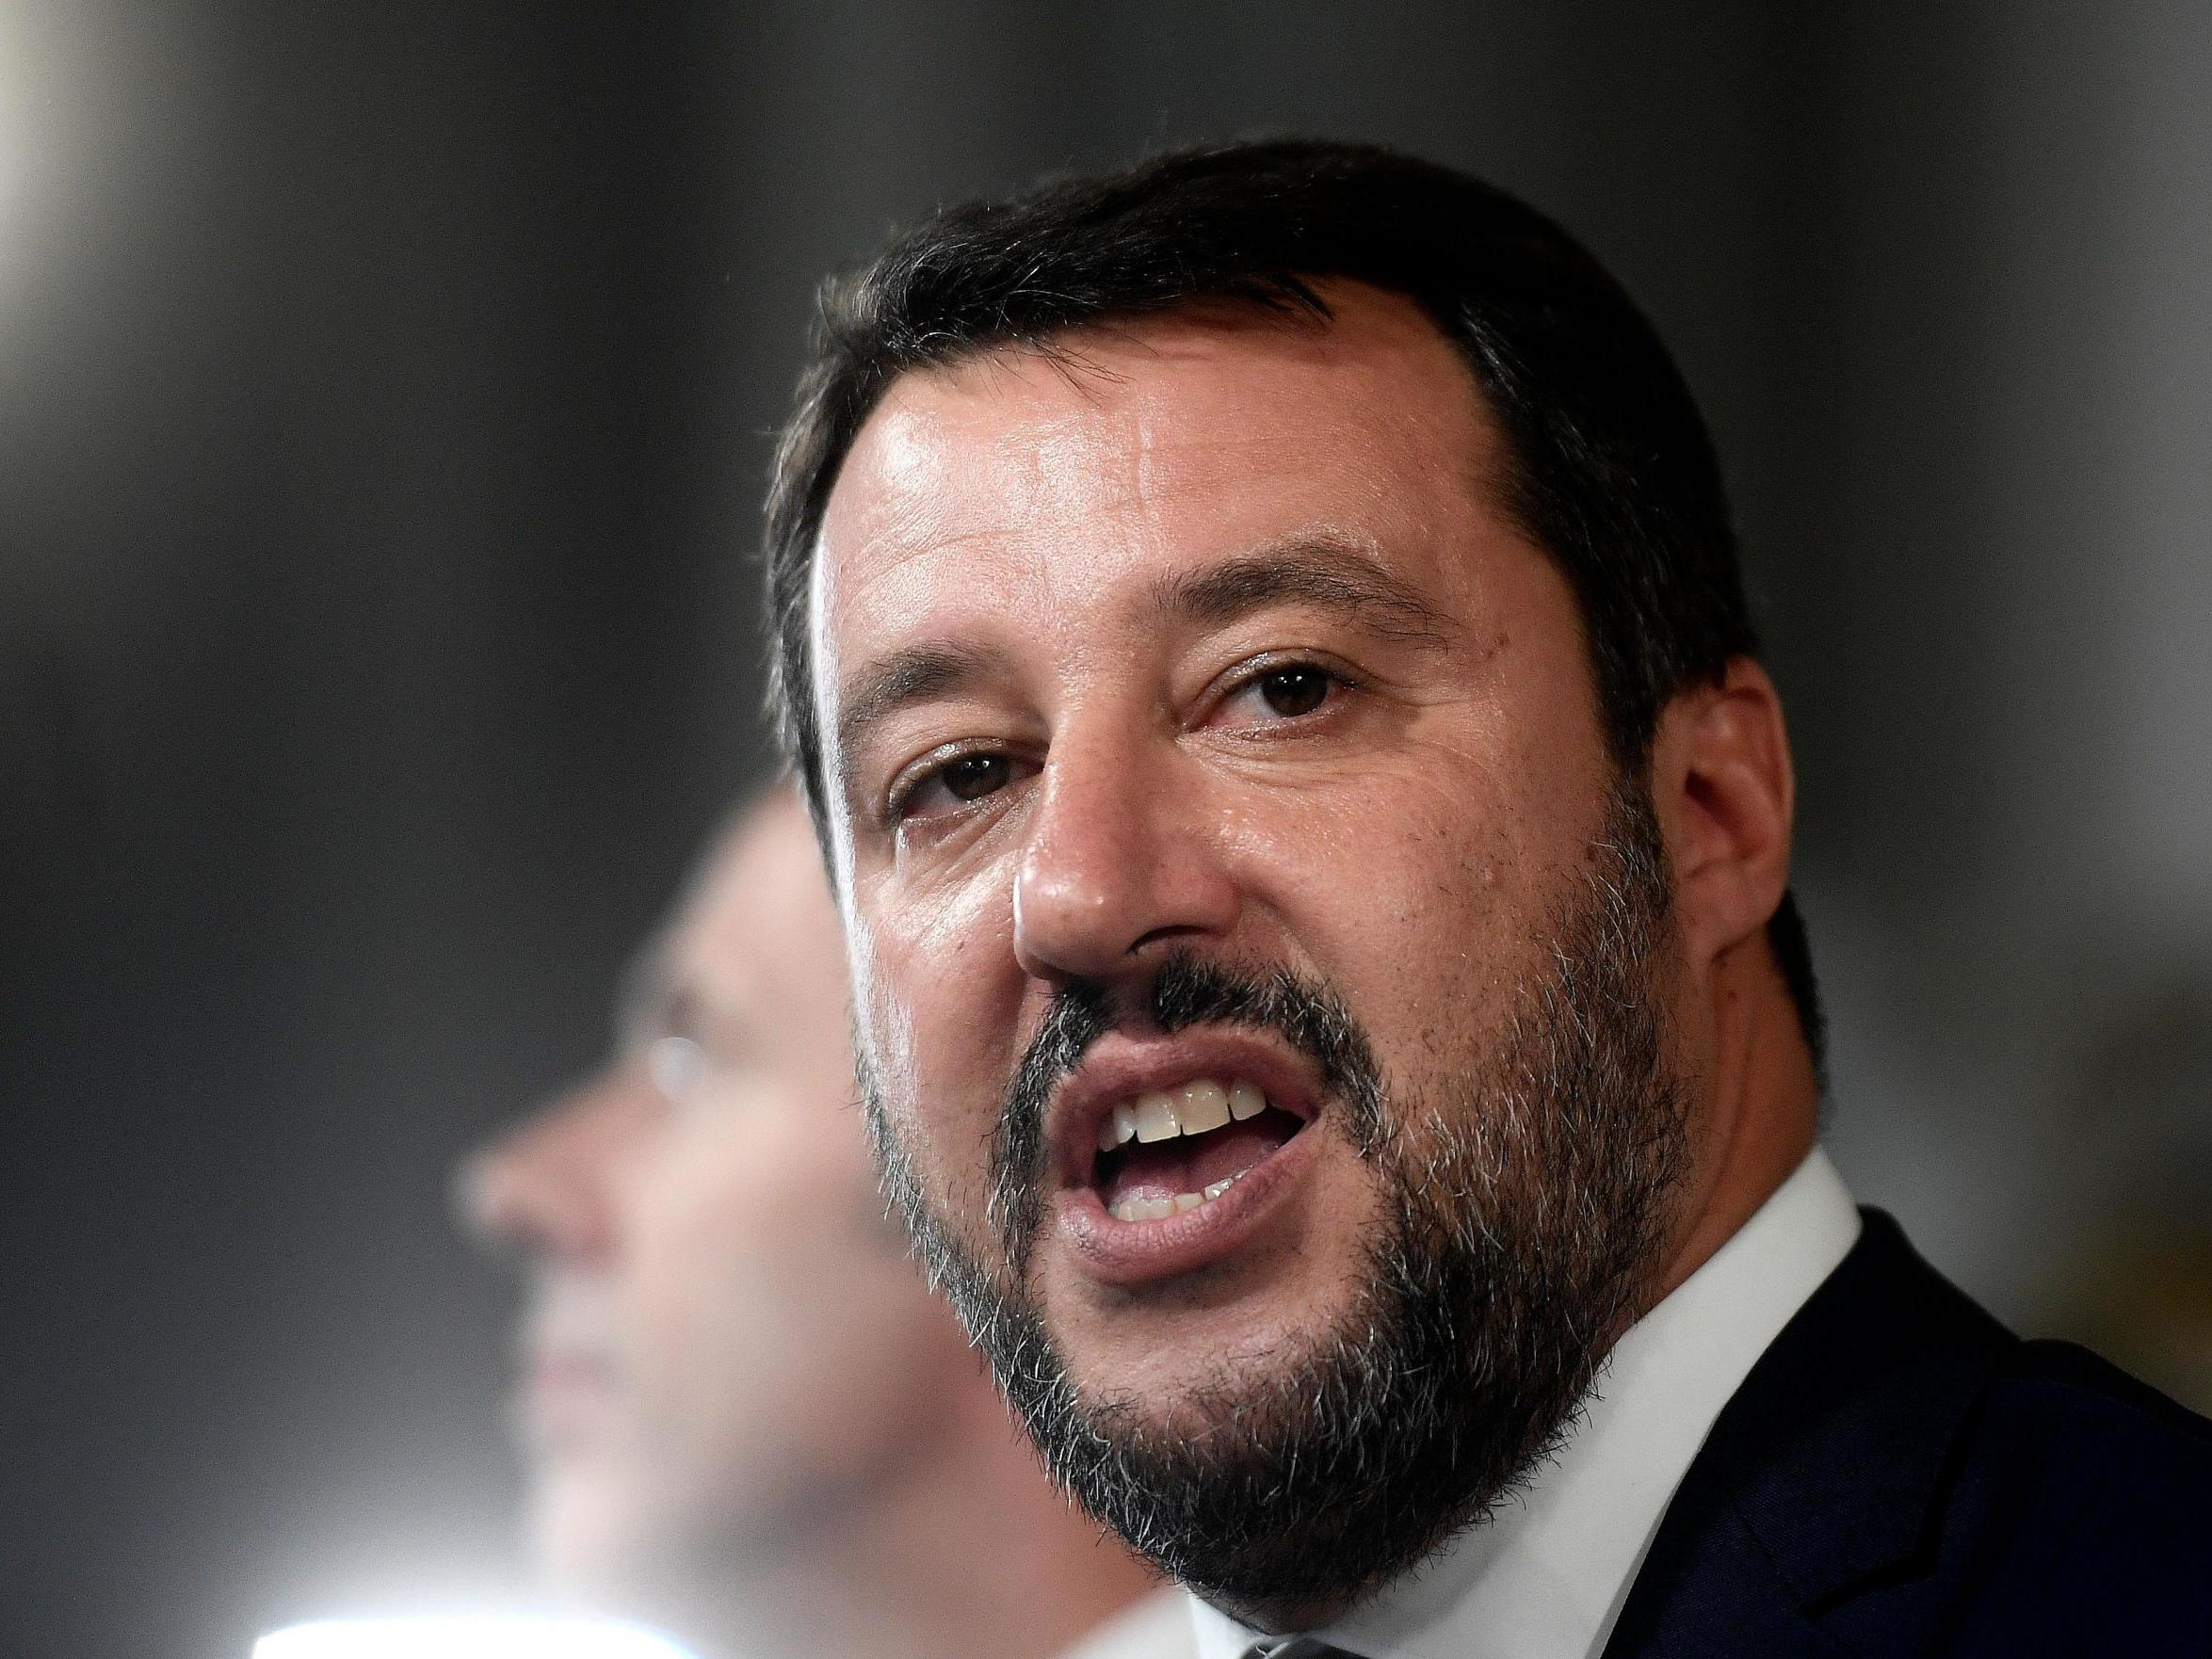 Opinion: Italy is one step closer to protecting LGBT+ people with a new bill, if the far-right doesn't tear it down first